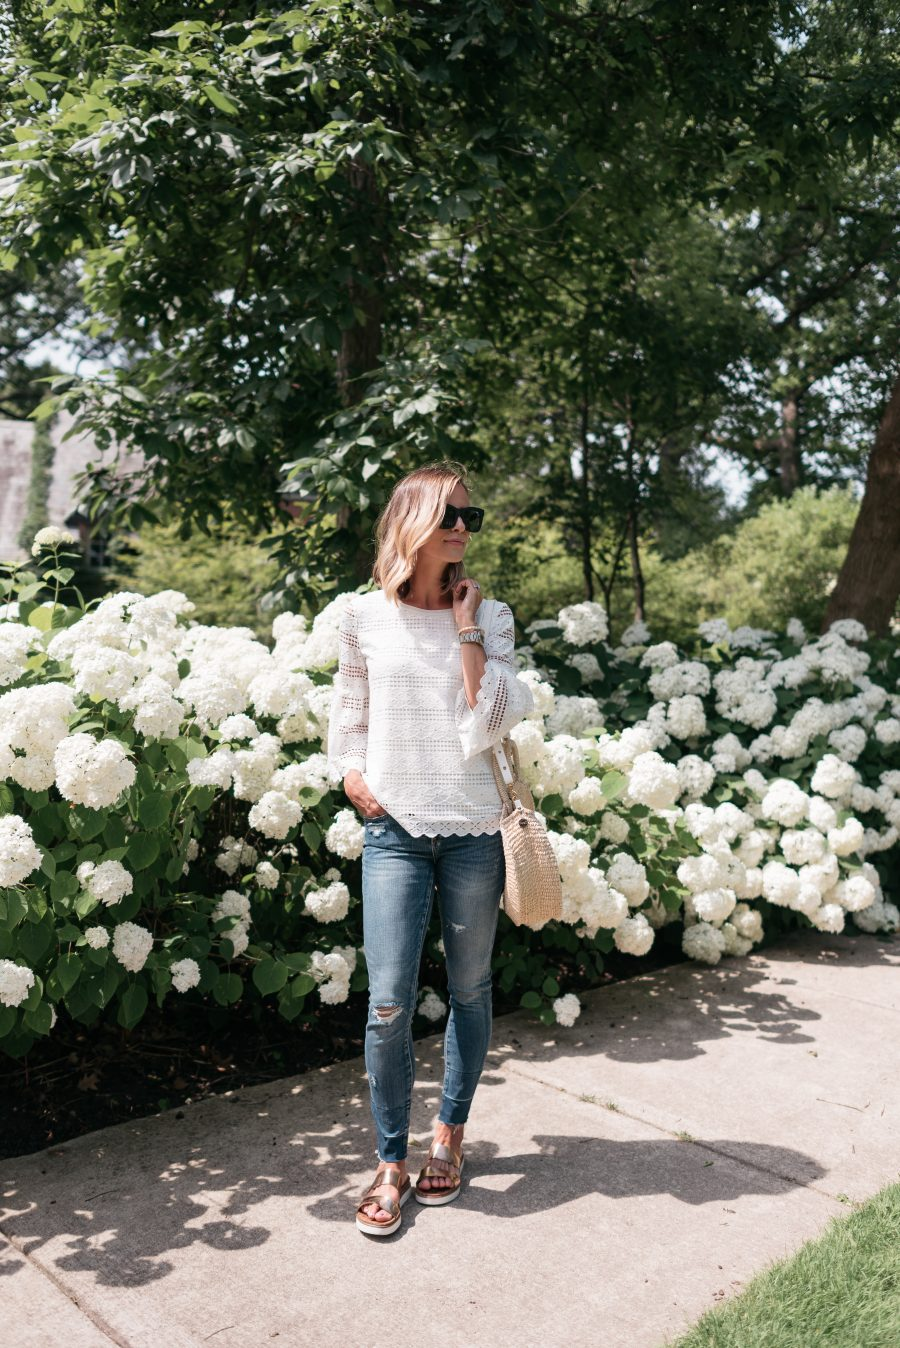 10 Easy Summer Outfit Ideas, denim and blouse